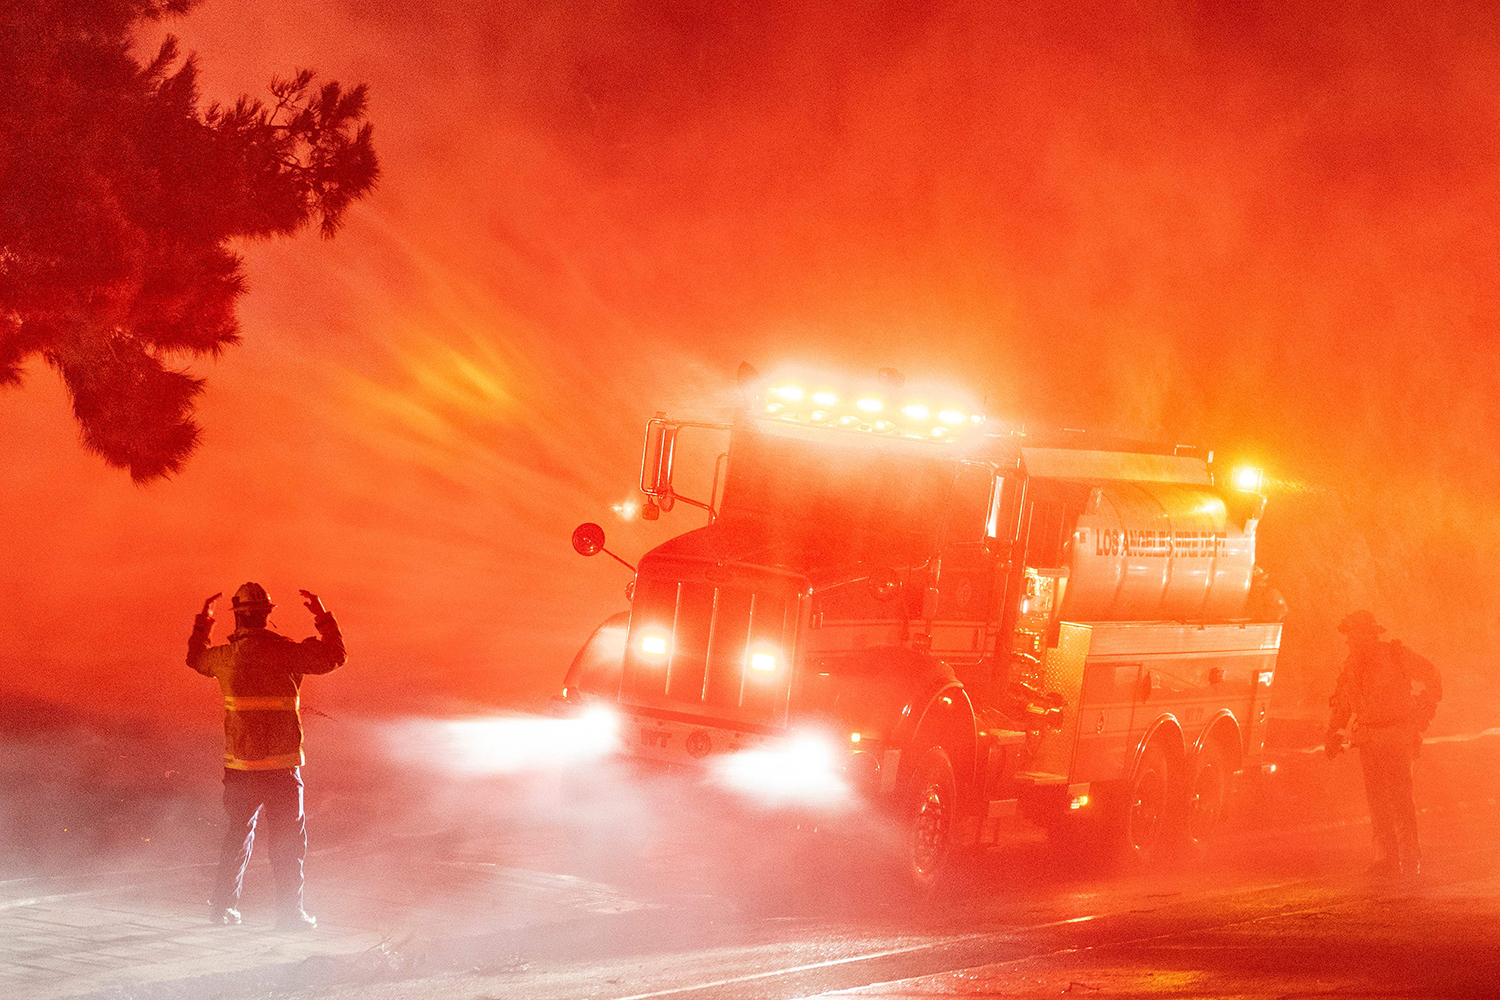 Firefighters fight flames on the side of Interstate 210 in Sylmar, California, on Jan. 19. JOSH EDELSON/AFP via Getty Images